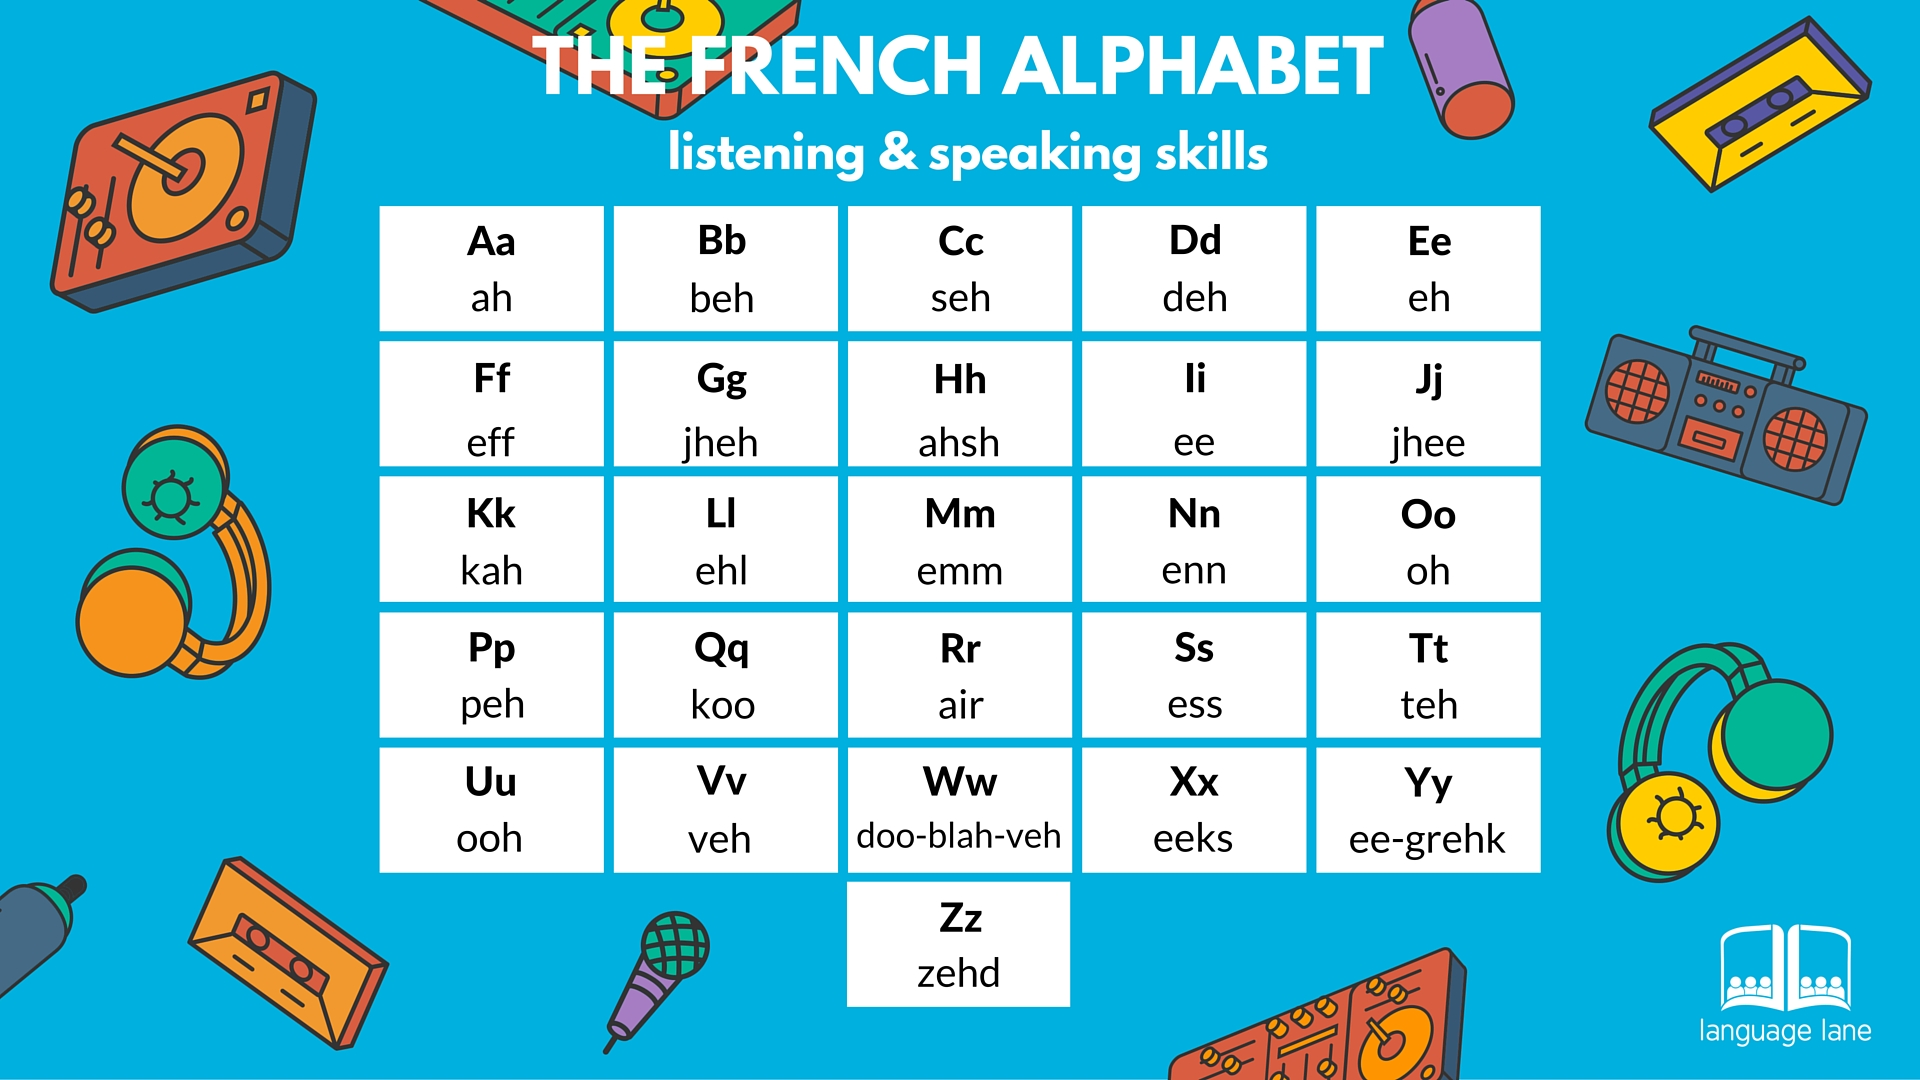 French Alphabet | Language Lane